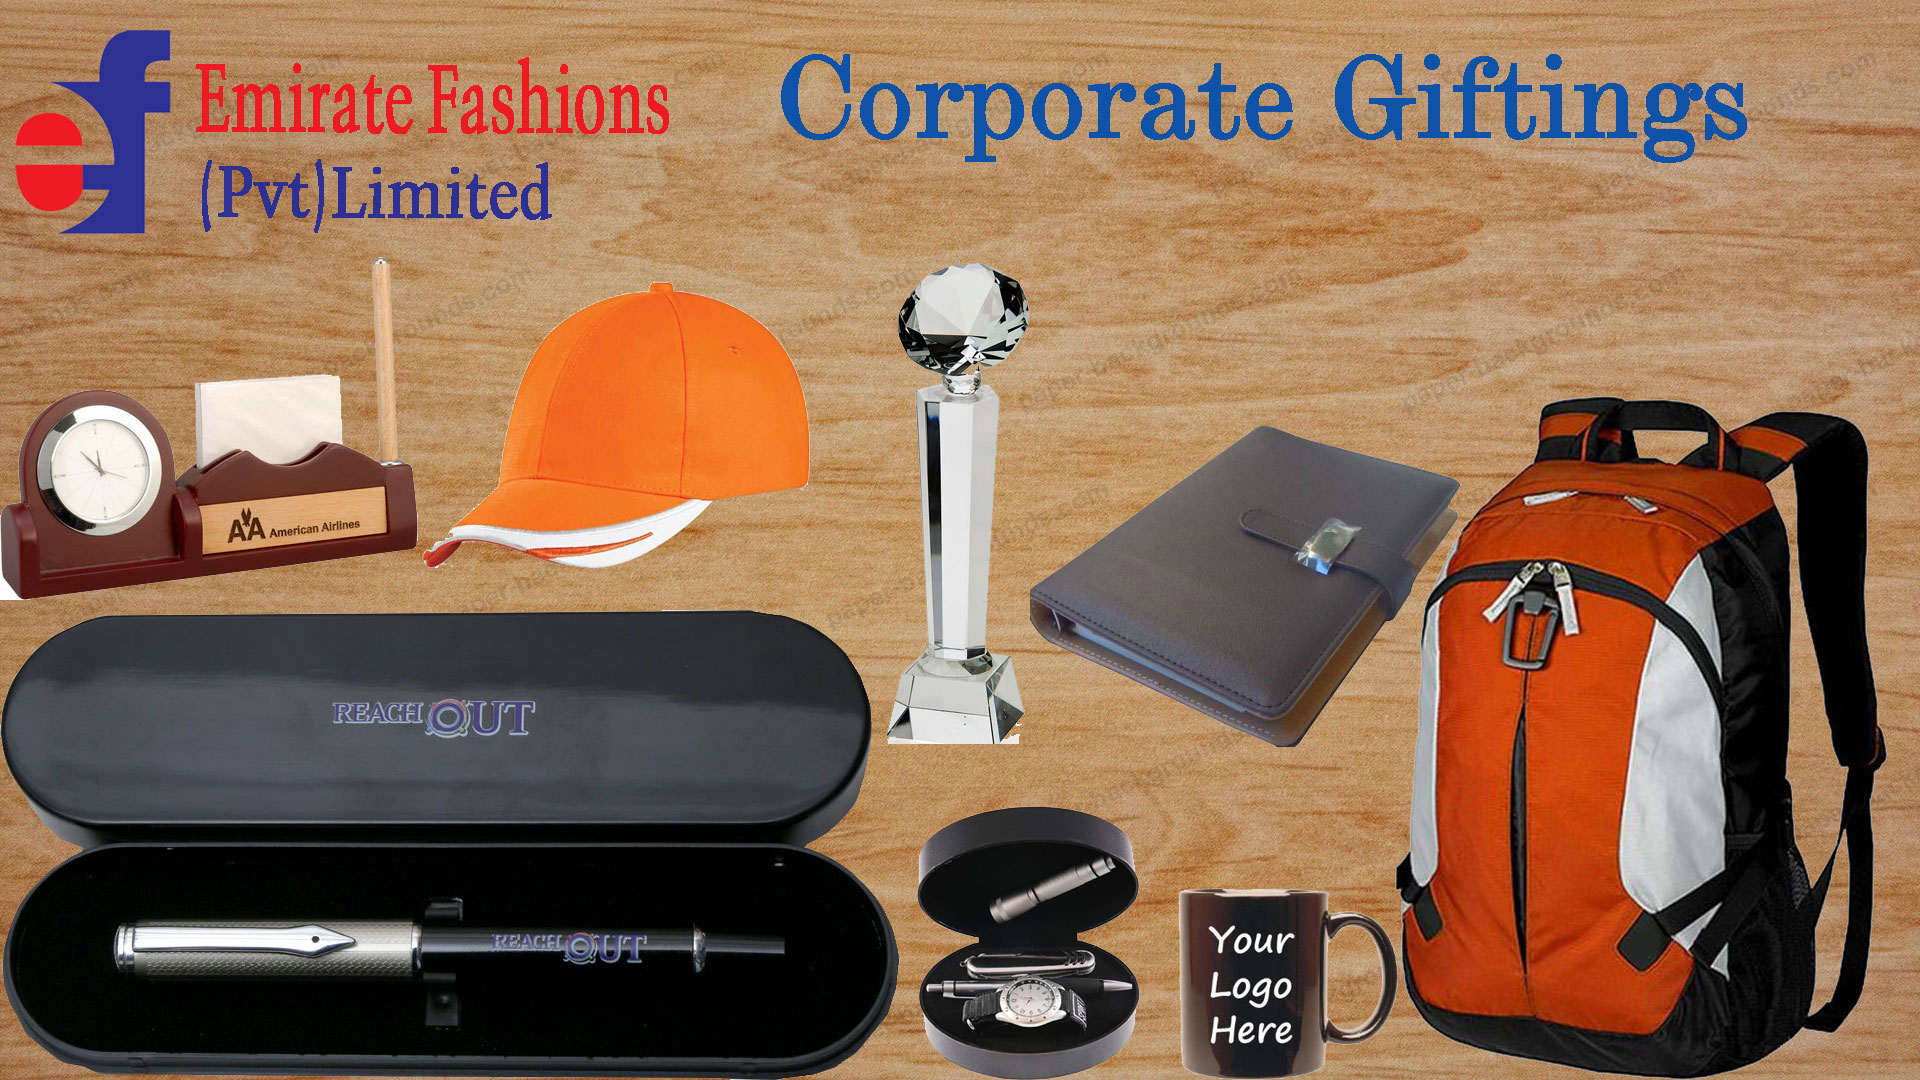 Corporate Giftings